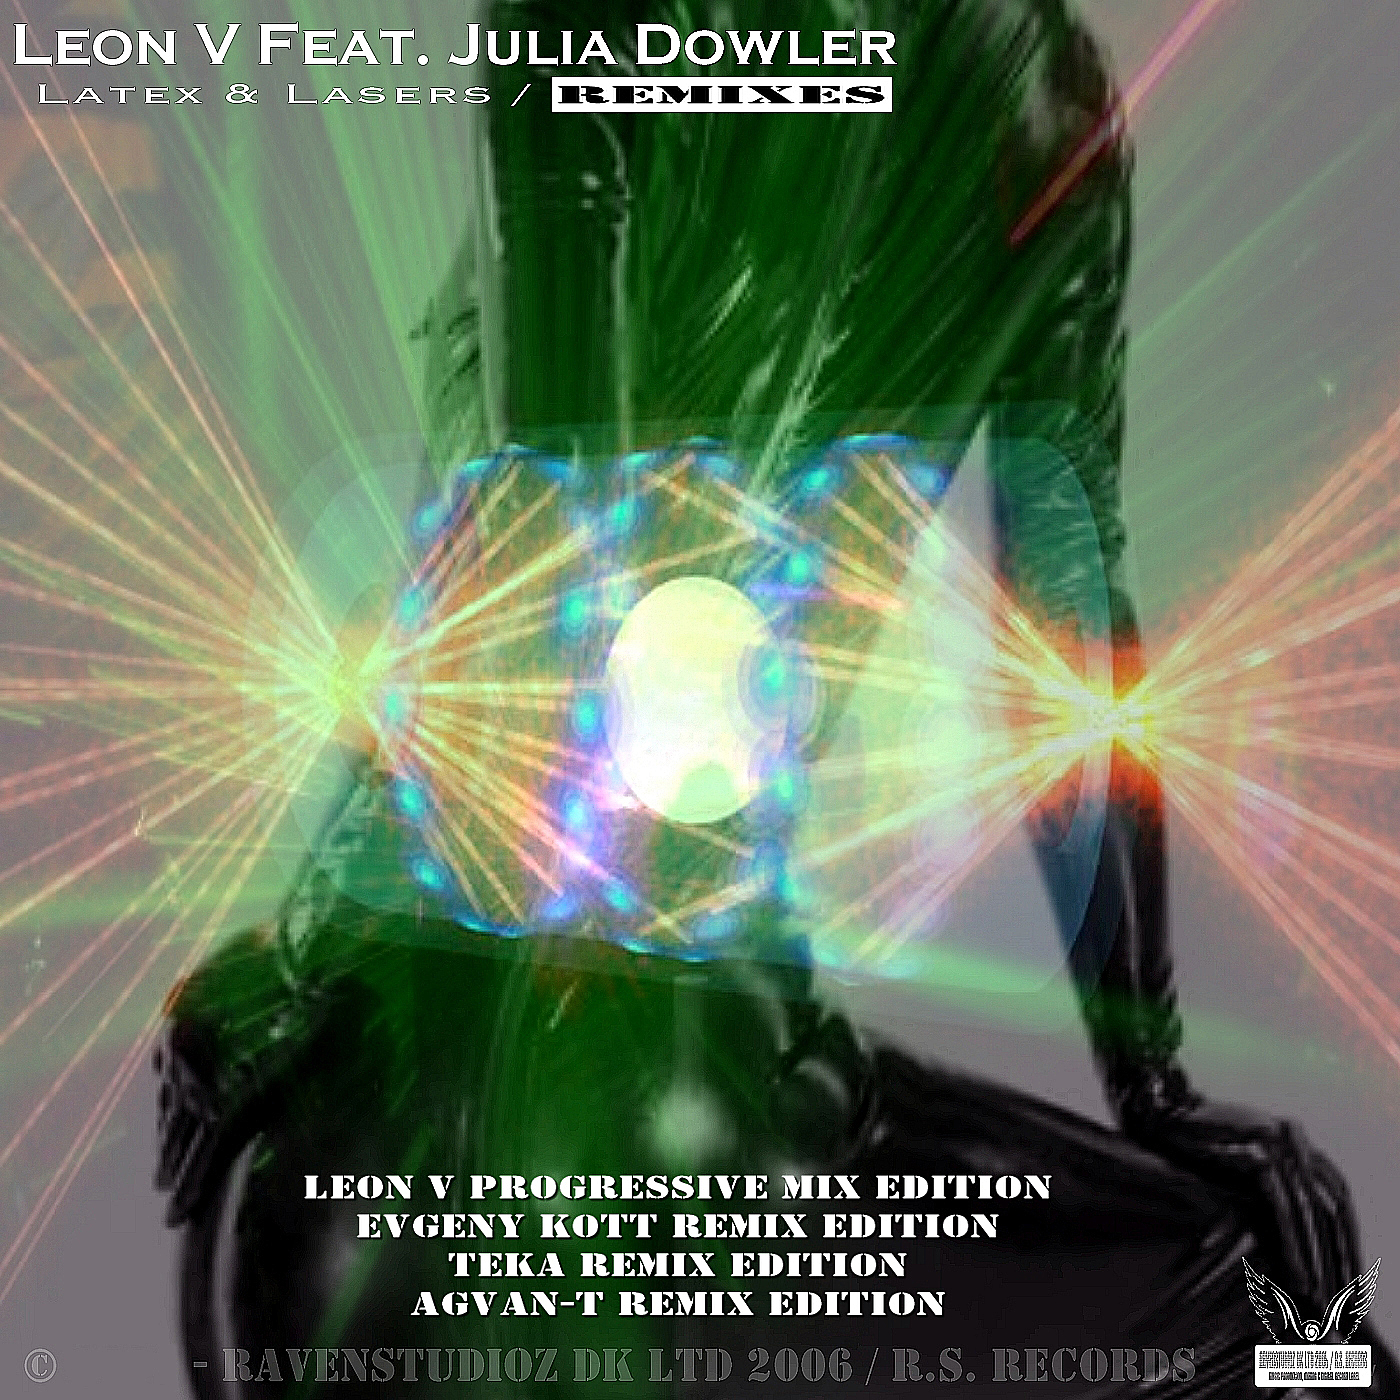 Latex & Lasers (feat. Julia Dowler) (Agvan-T Remix Edition)